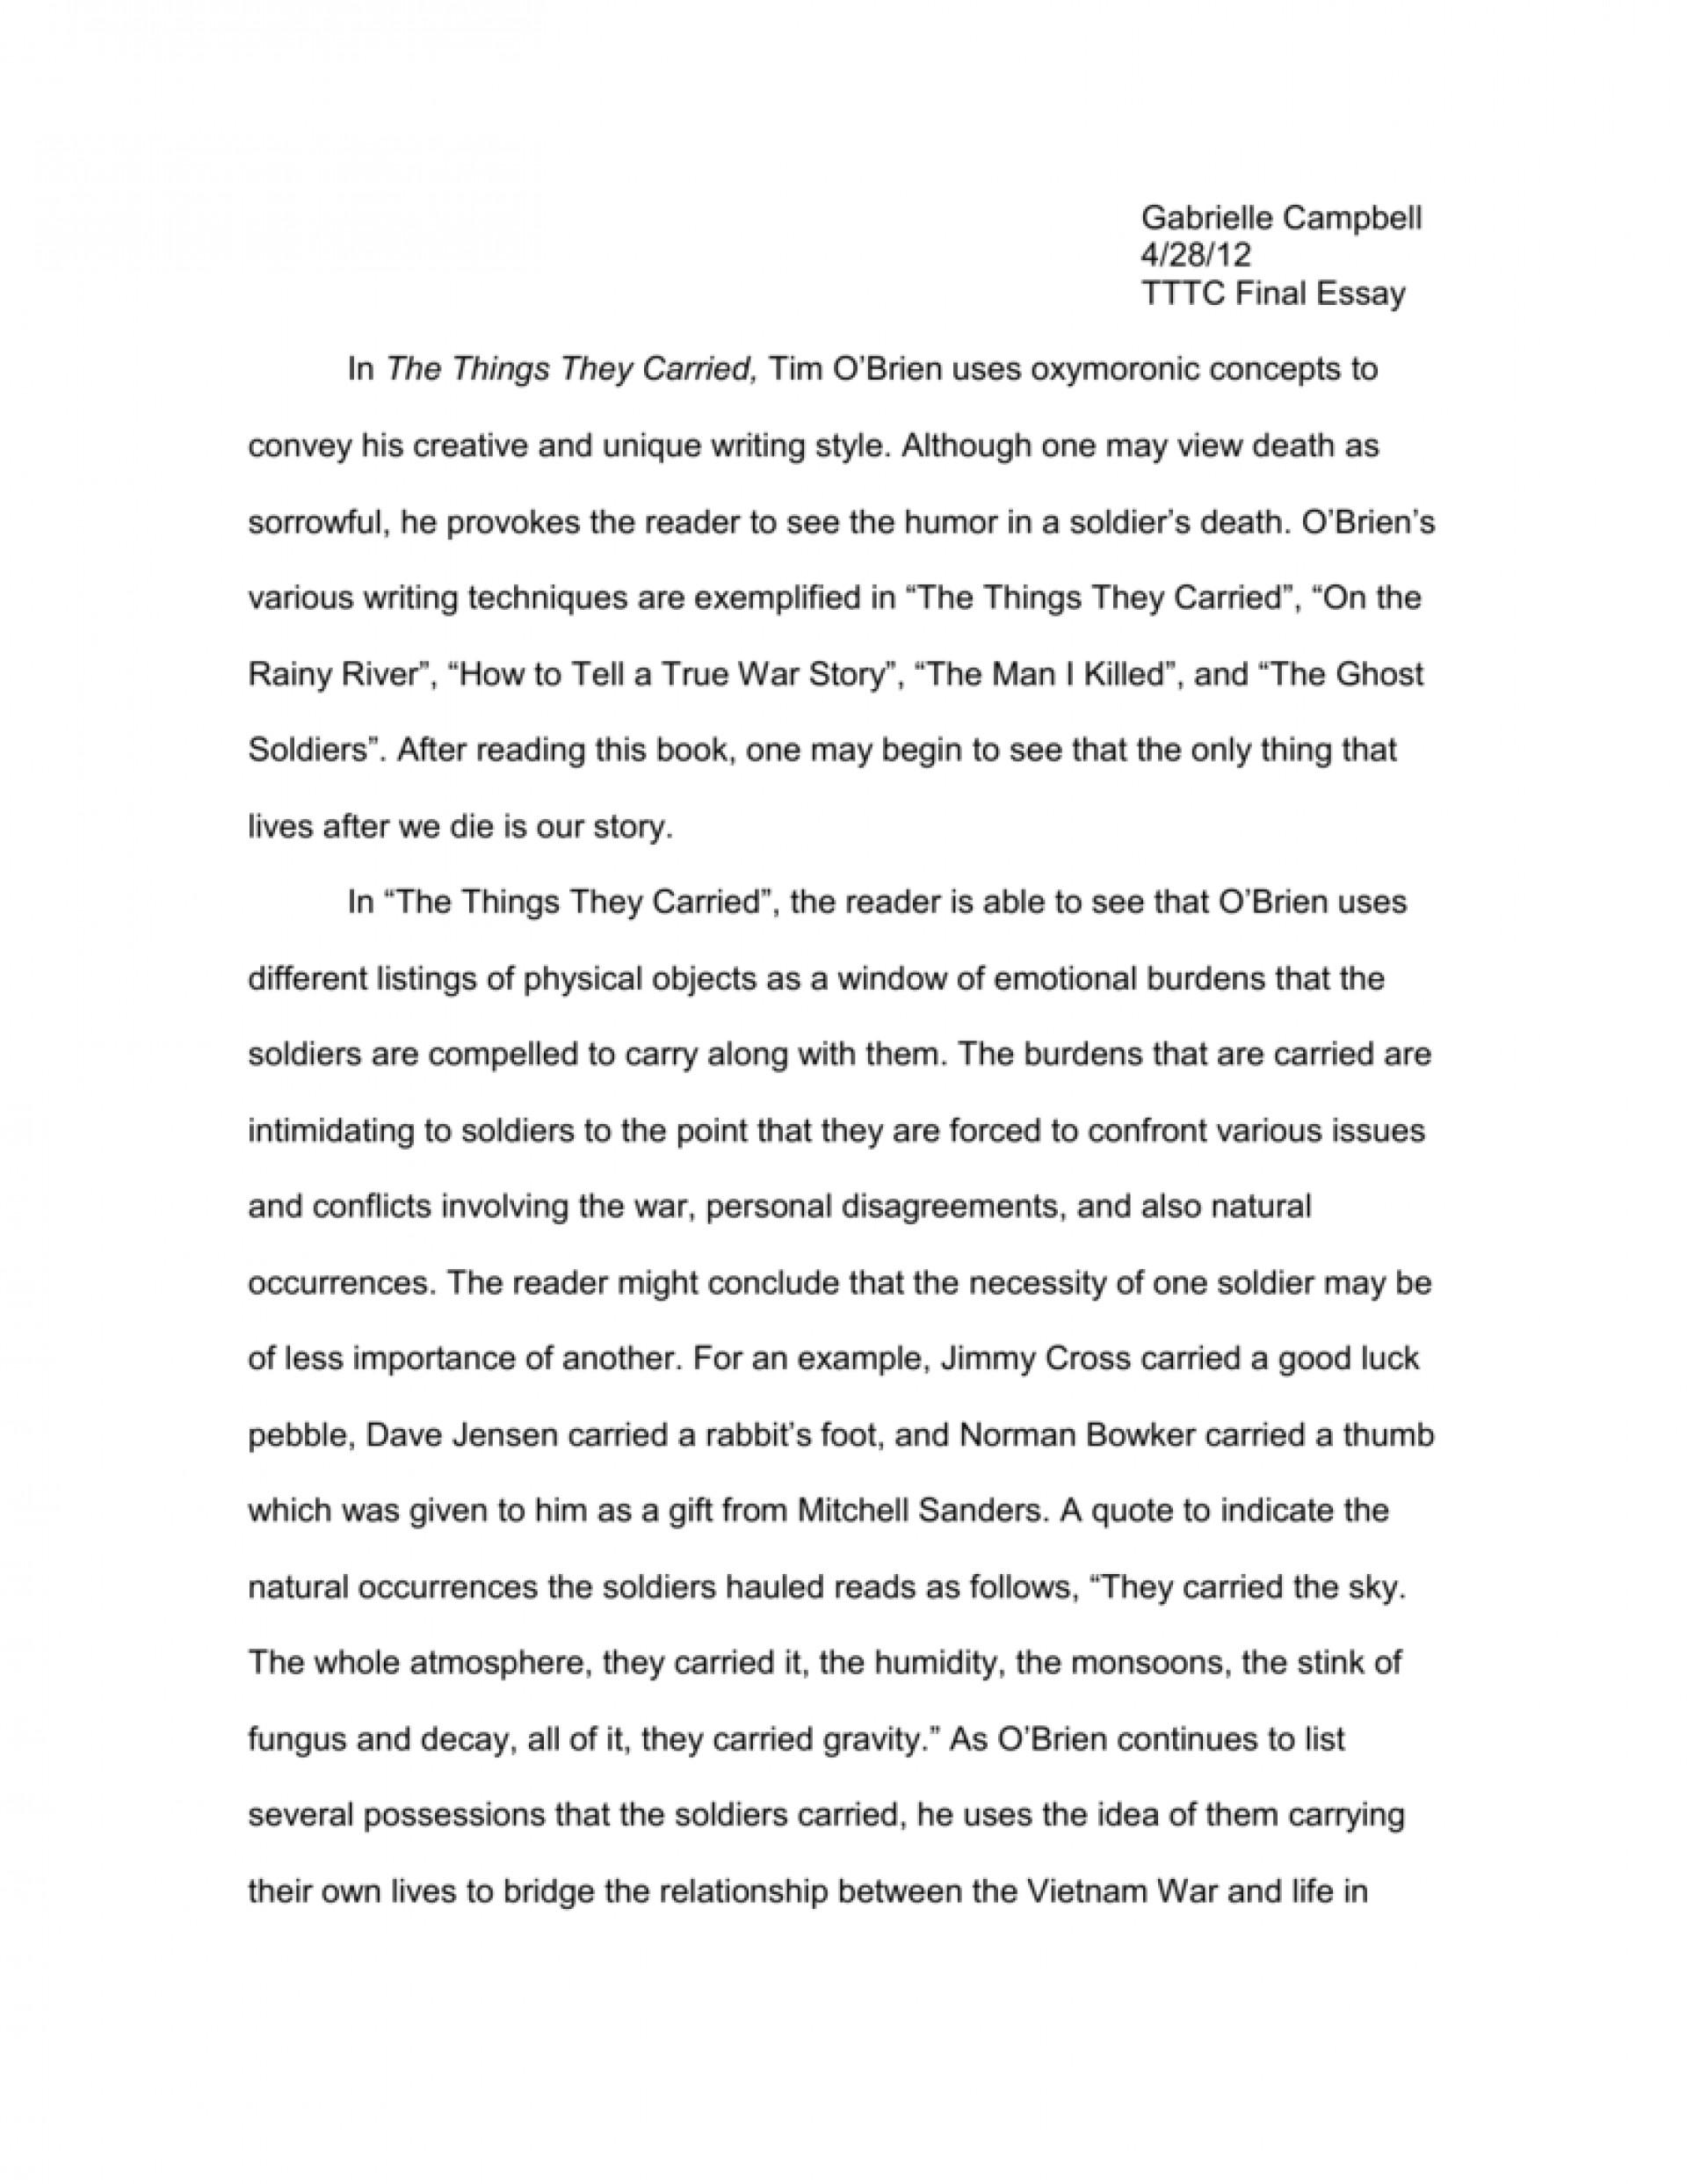 001 The Things They Carried Essay Example 008028277 1 Incredible Introduction Questions Prompts 1920